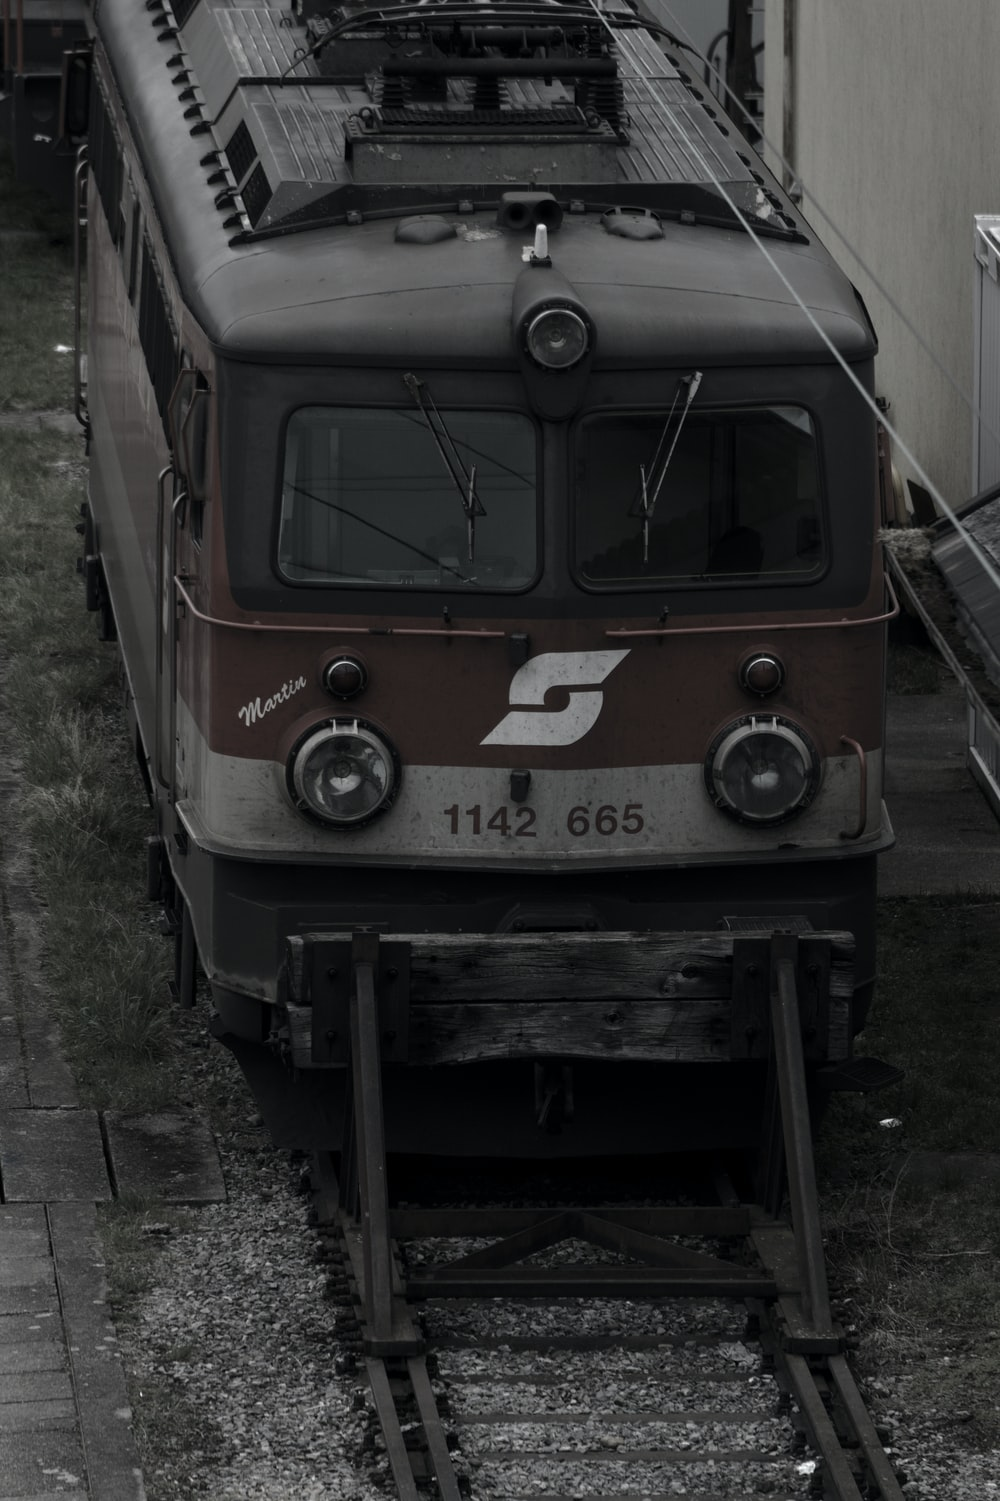 white and brown train on rail tracks during daytime